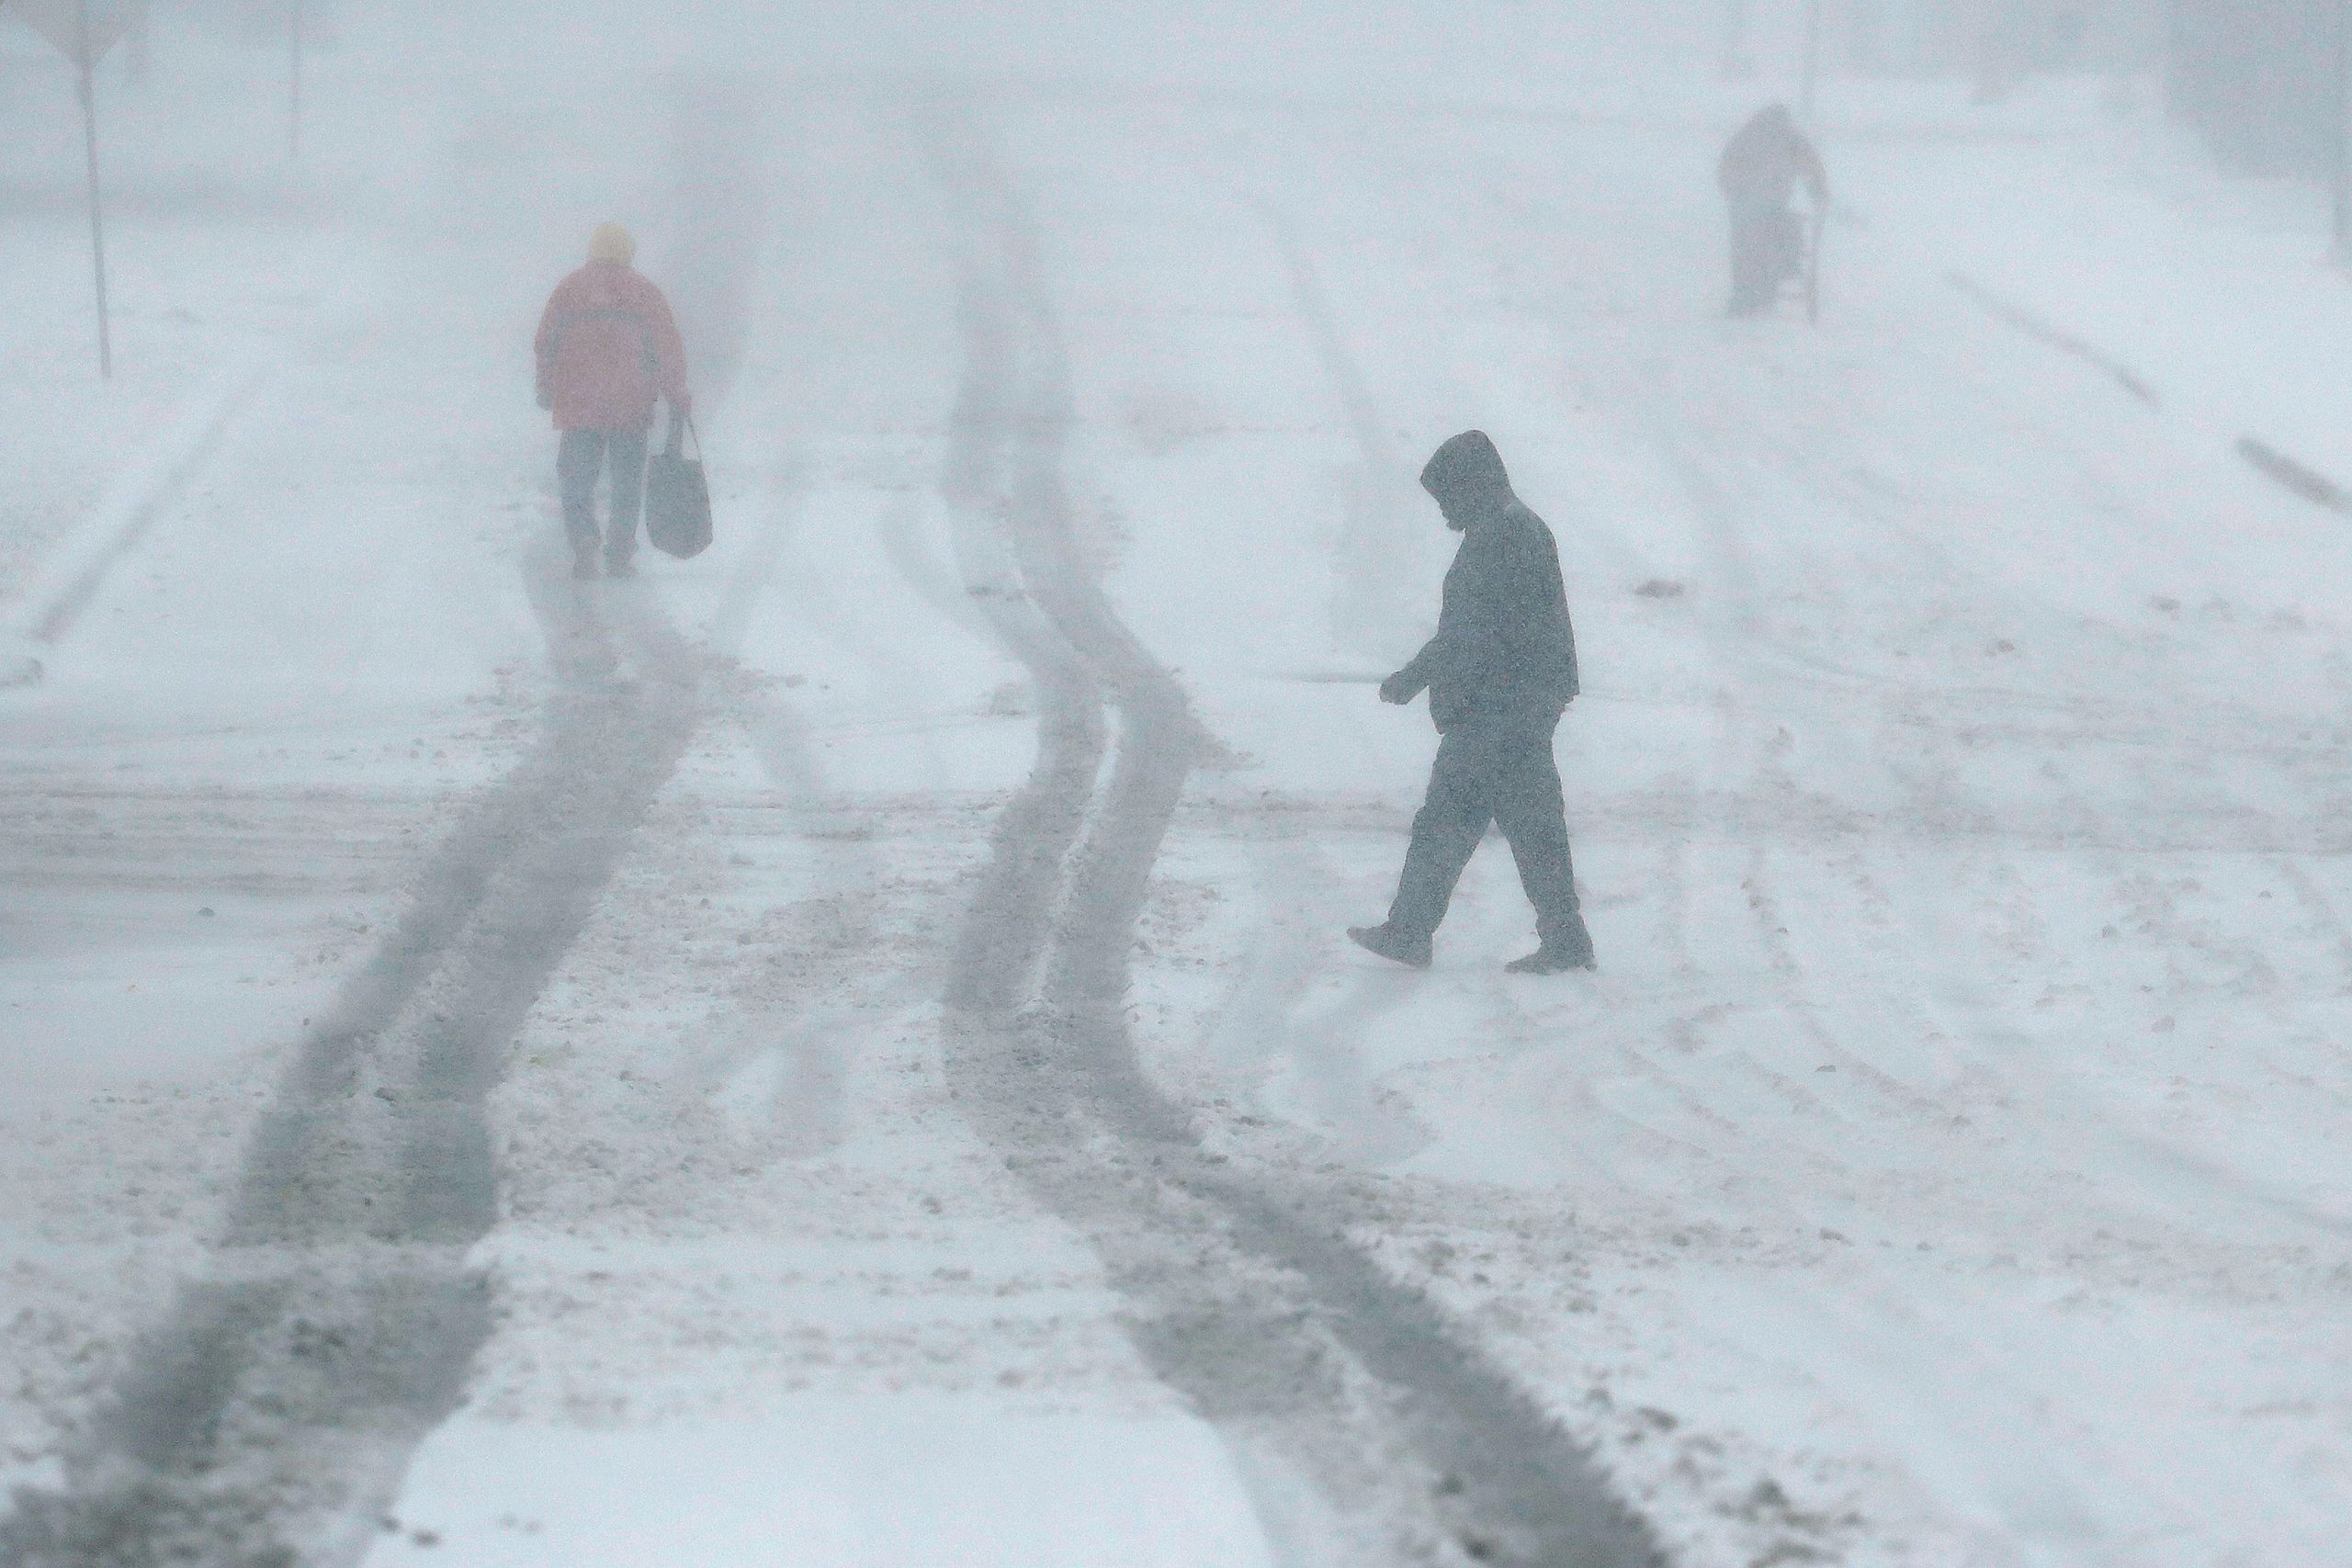 In Chicago snowstorm, Perilous Travel, 'close to whiteout conditions' reported